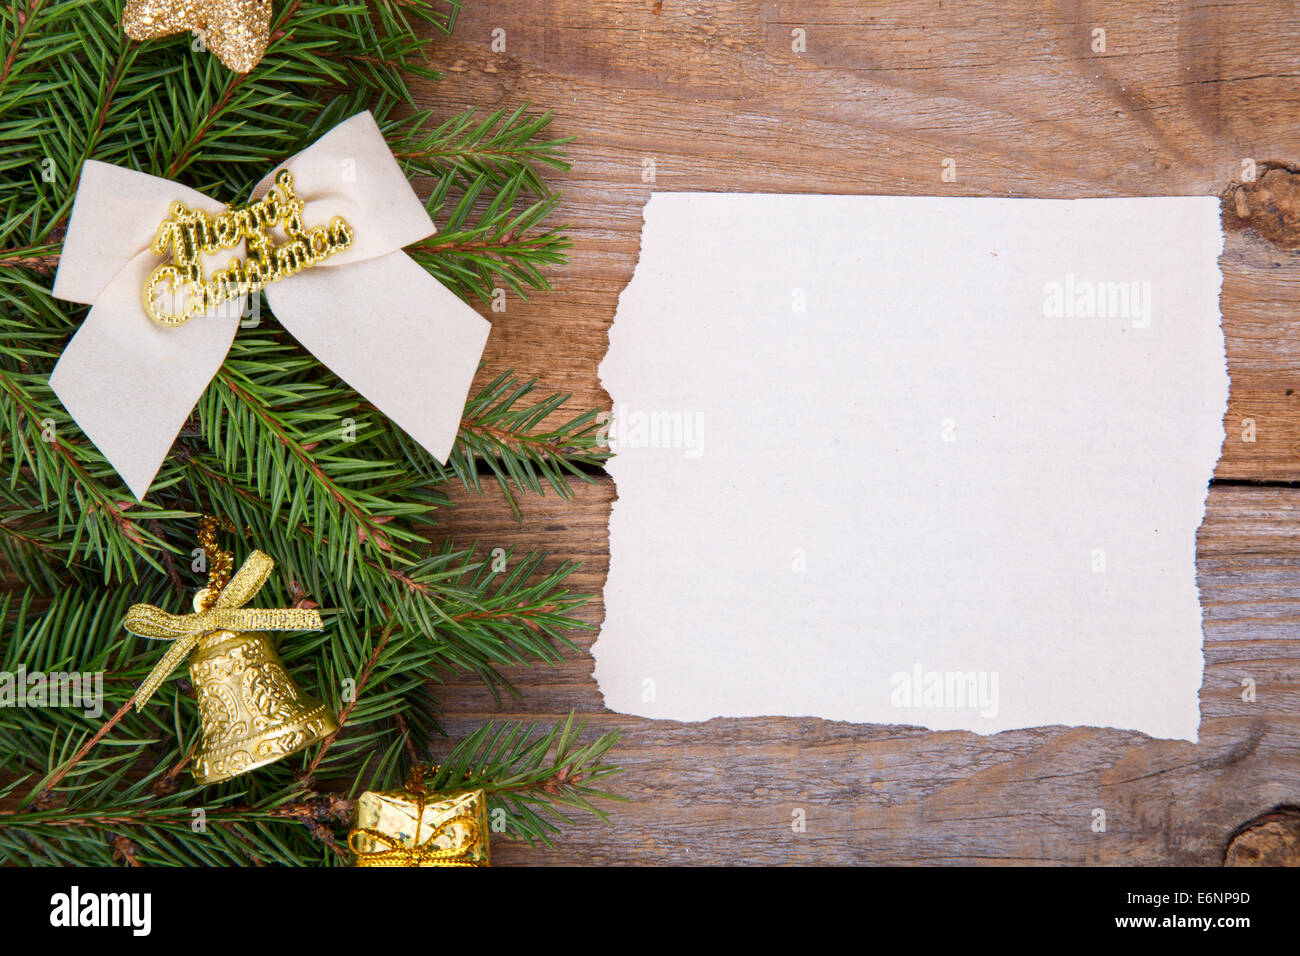 Blank Christmas card or invitation with gold envelope surrounded by ...